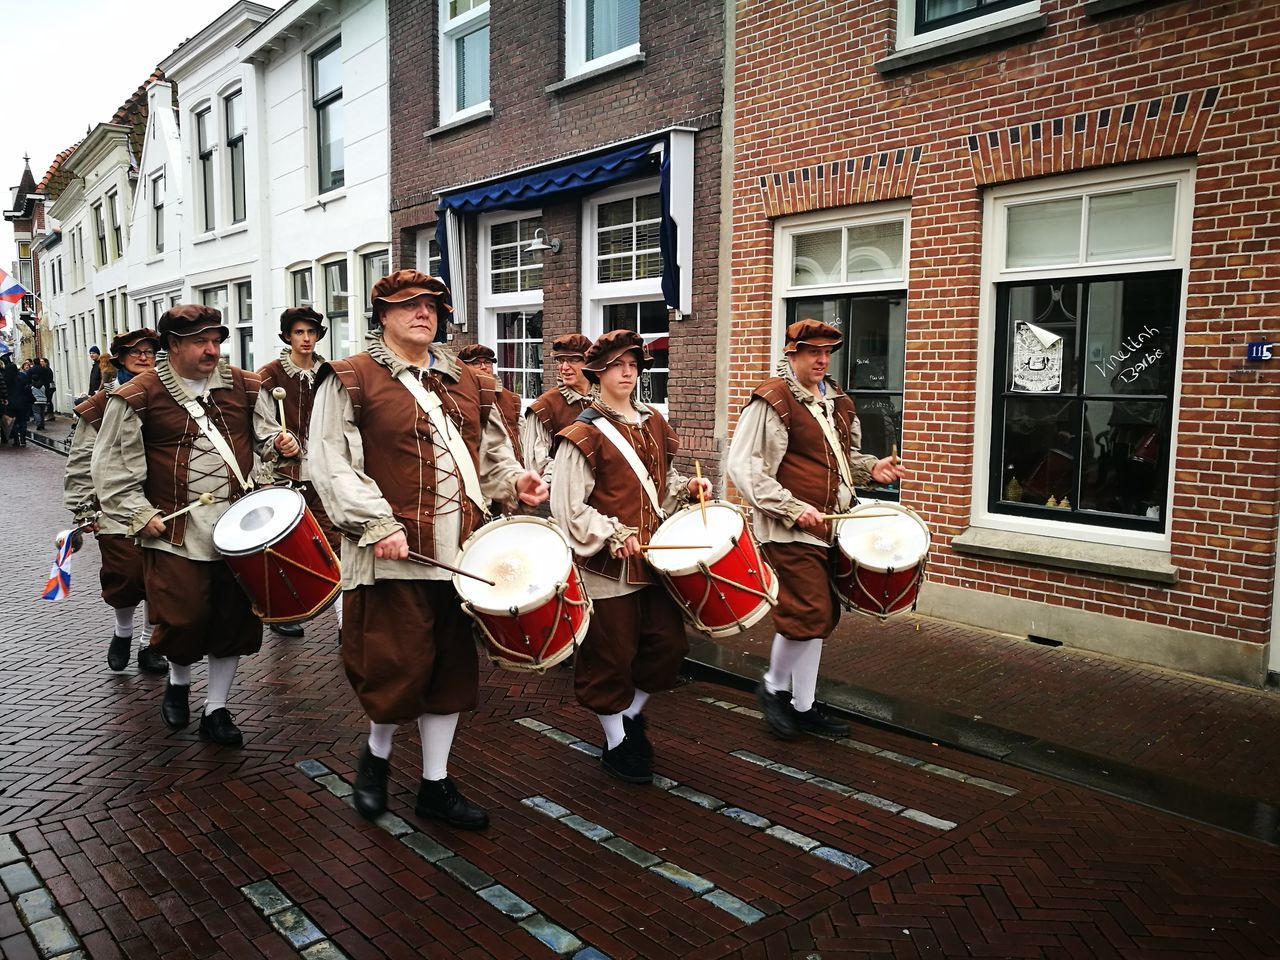 Music Musical Instrument Musician Adult People Playing Old-fashioned Celebration Event History Dutch Brielle Tourism Performance Happiness Celebration Event Drumming On The Streets Drumming Drums